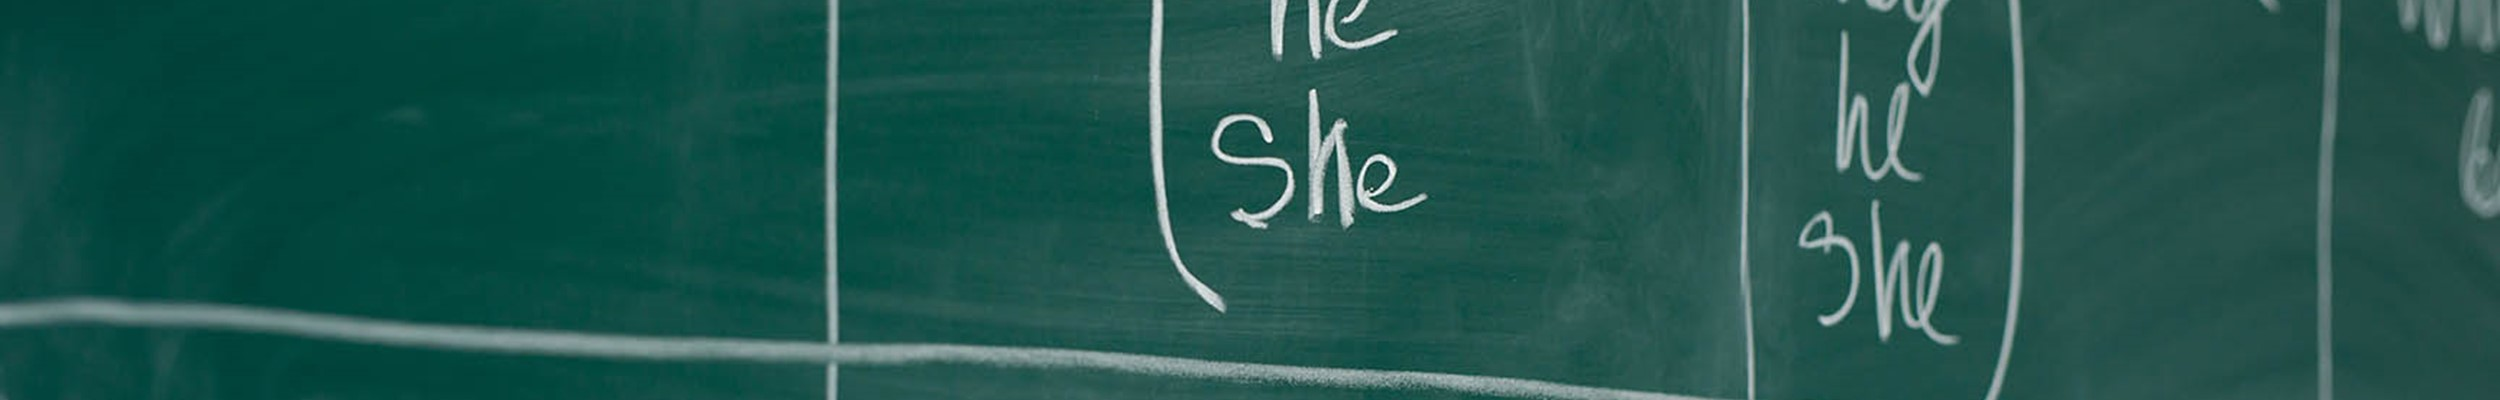 Writing in chalk on chalboard